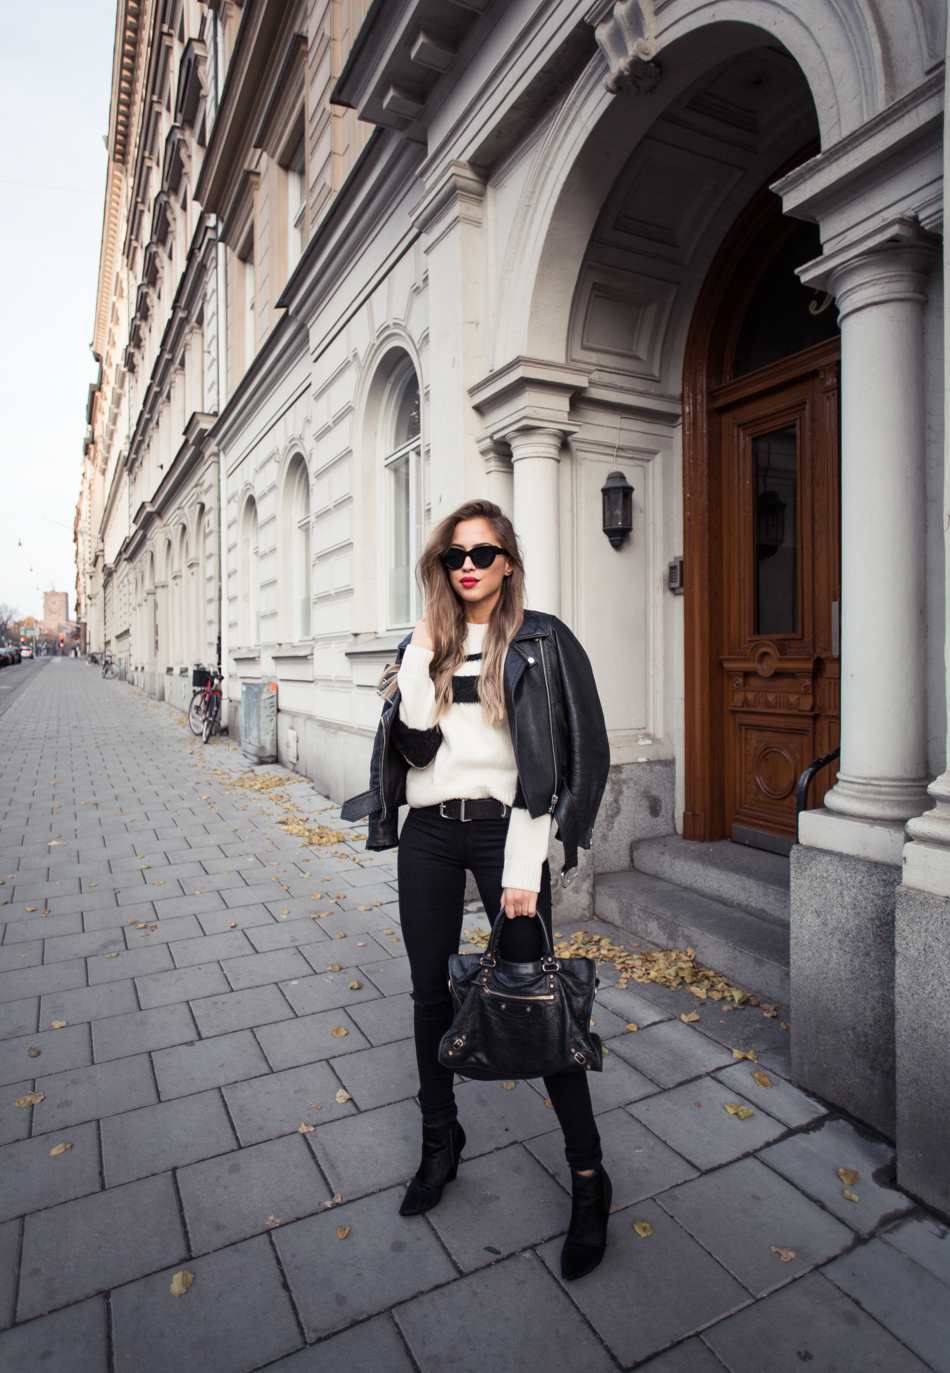 Kenza Zouiten looks ultra sleek in skinny jeans, a striped black and white sweater, and a stylish leather jacket. Sweater: Anine Bing, Jeans: Serious Sally, Boots: Jennie-Ellen, Bag: Balenciaga.